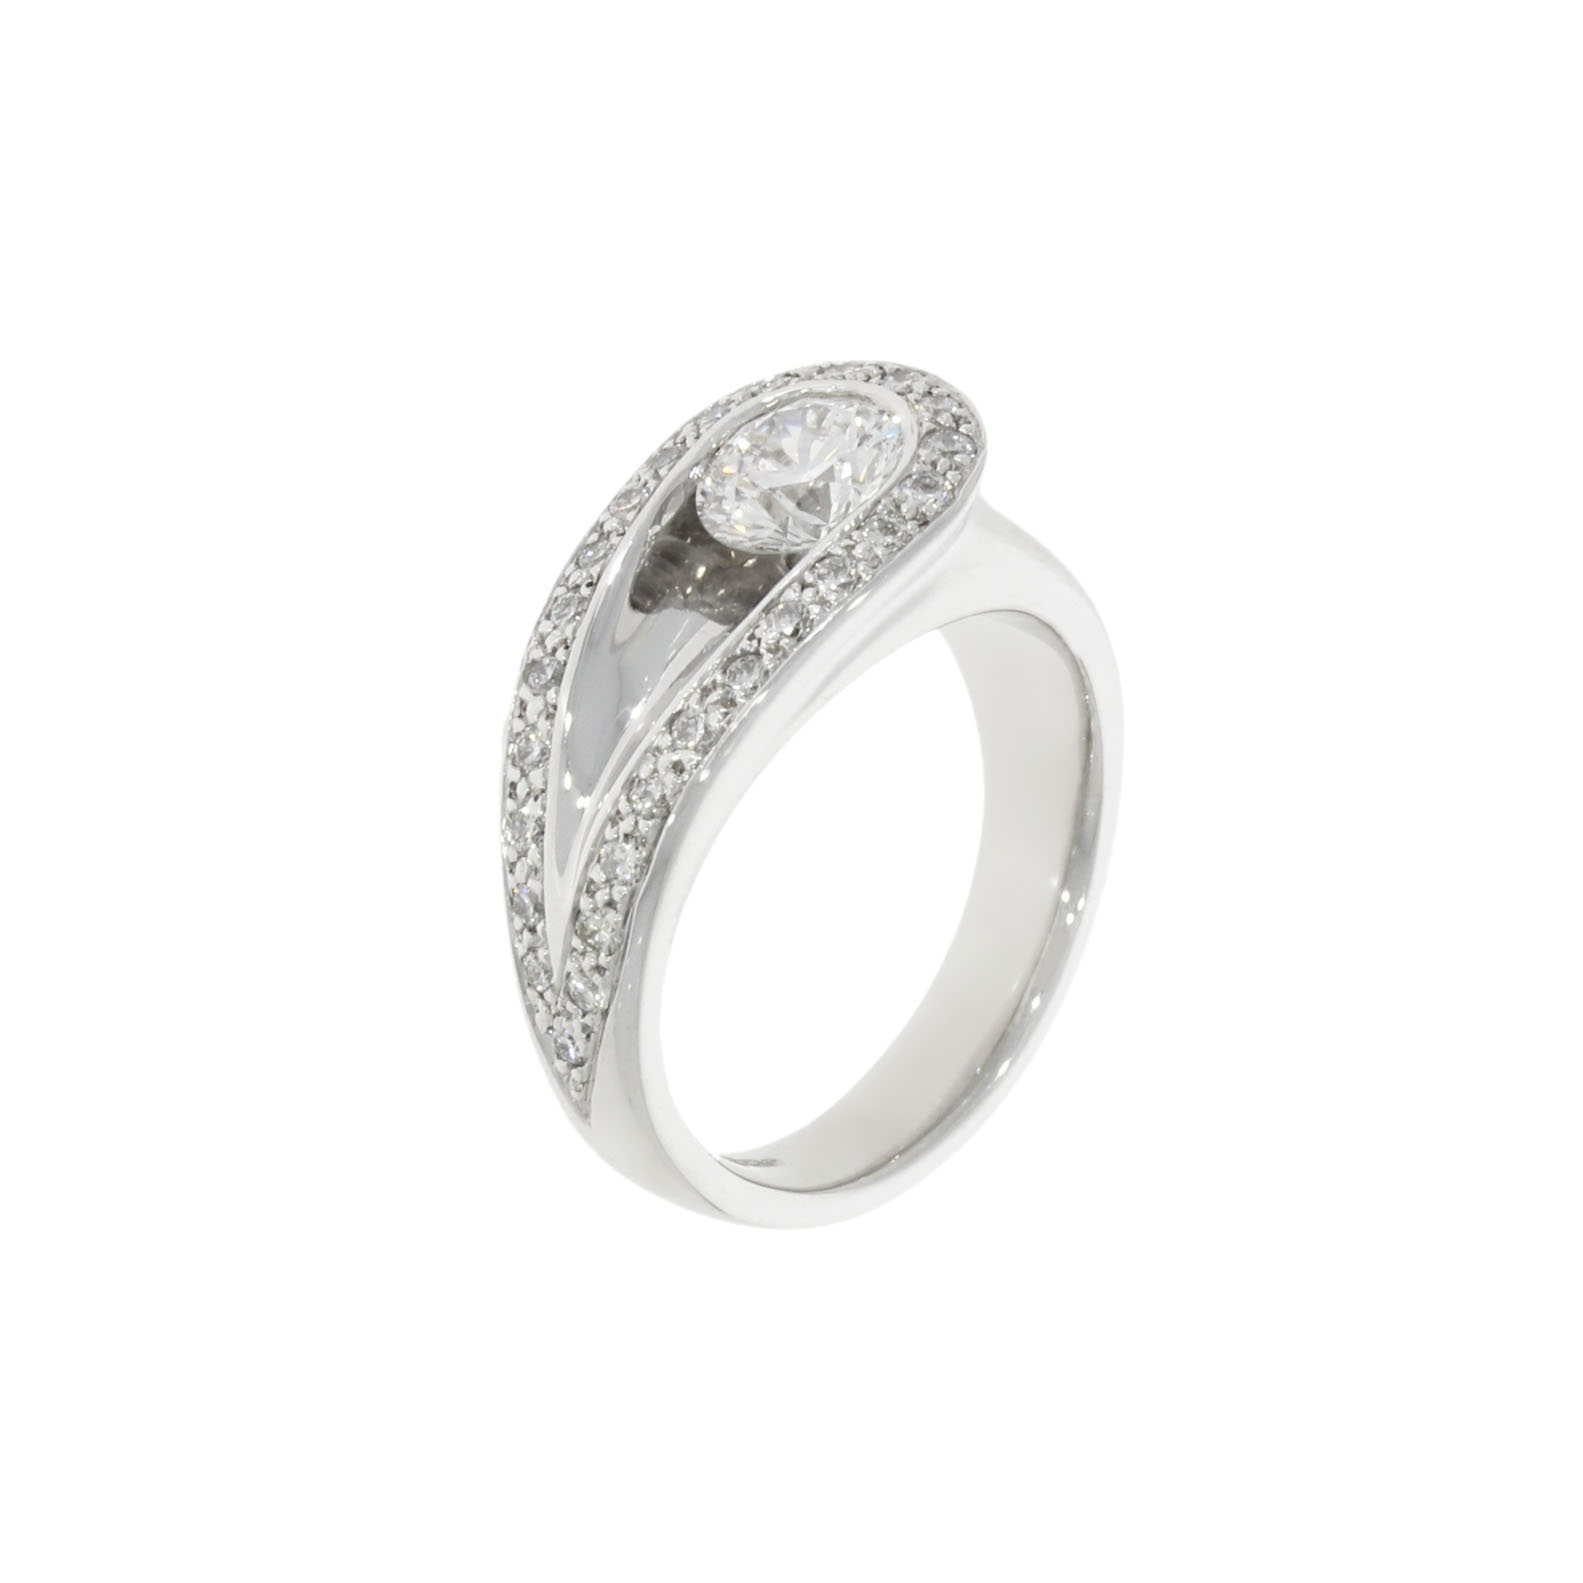 0.7ct approx white gold asymmetric contemporary diamond engagement ring